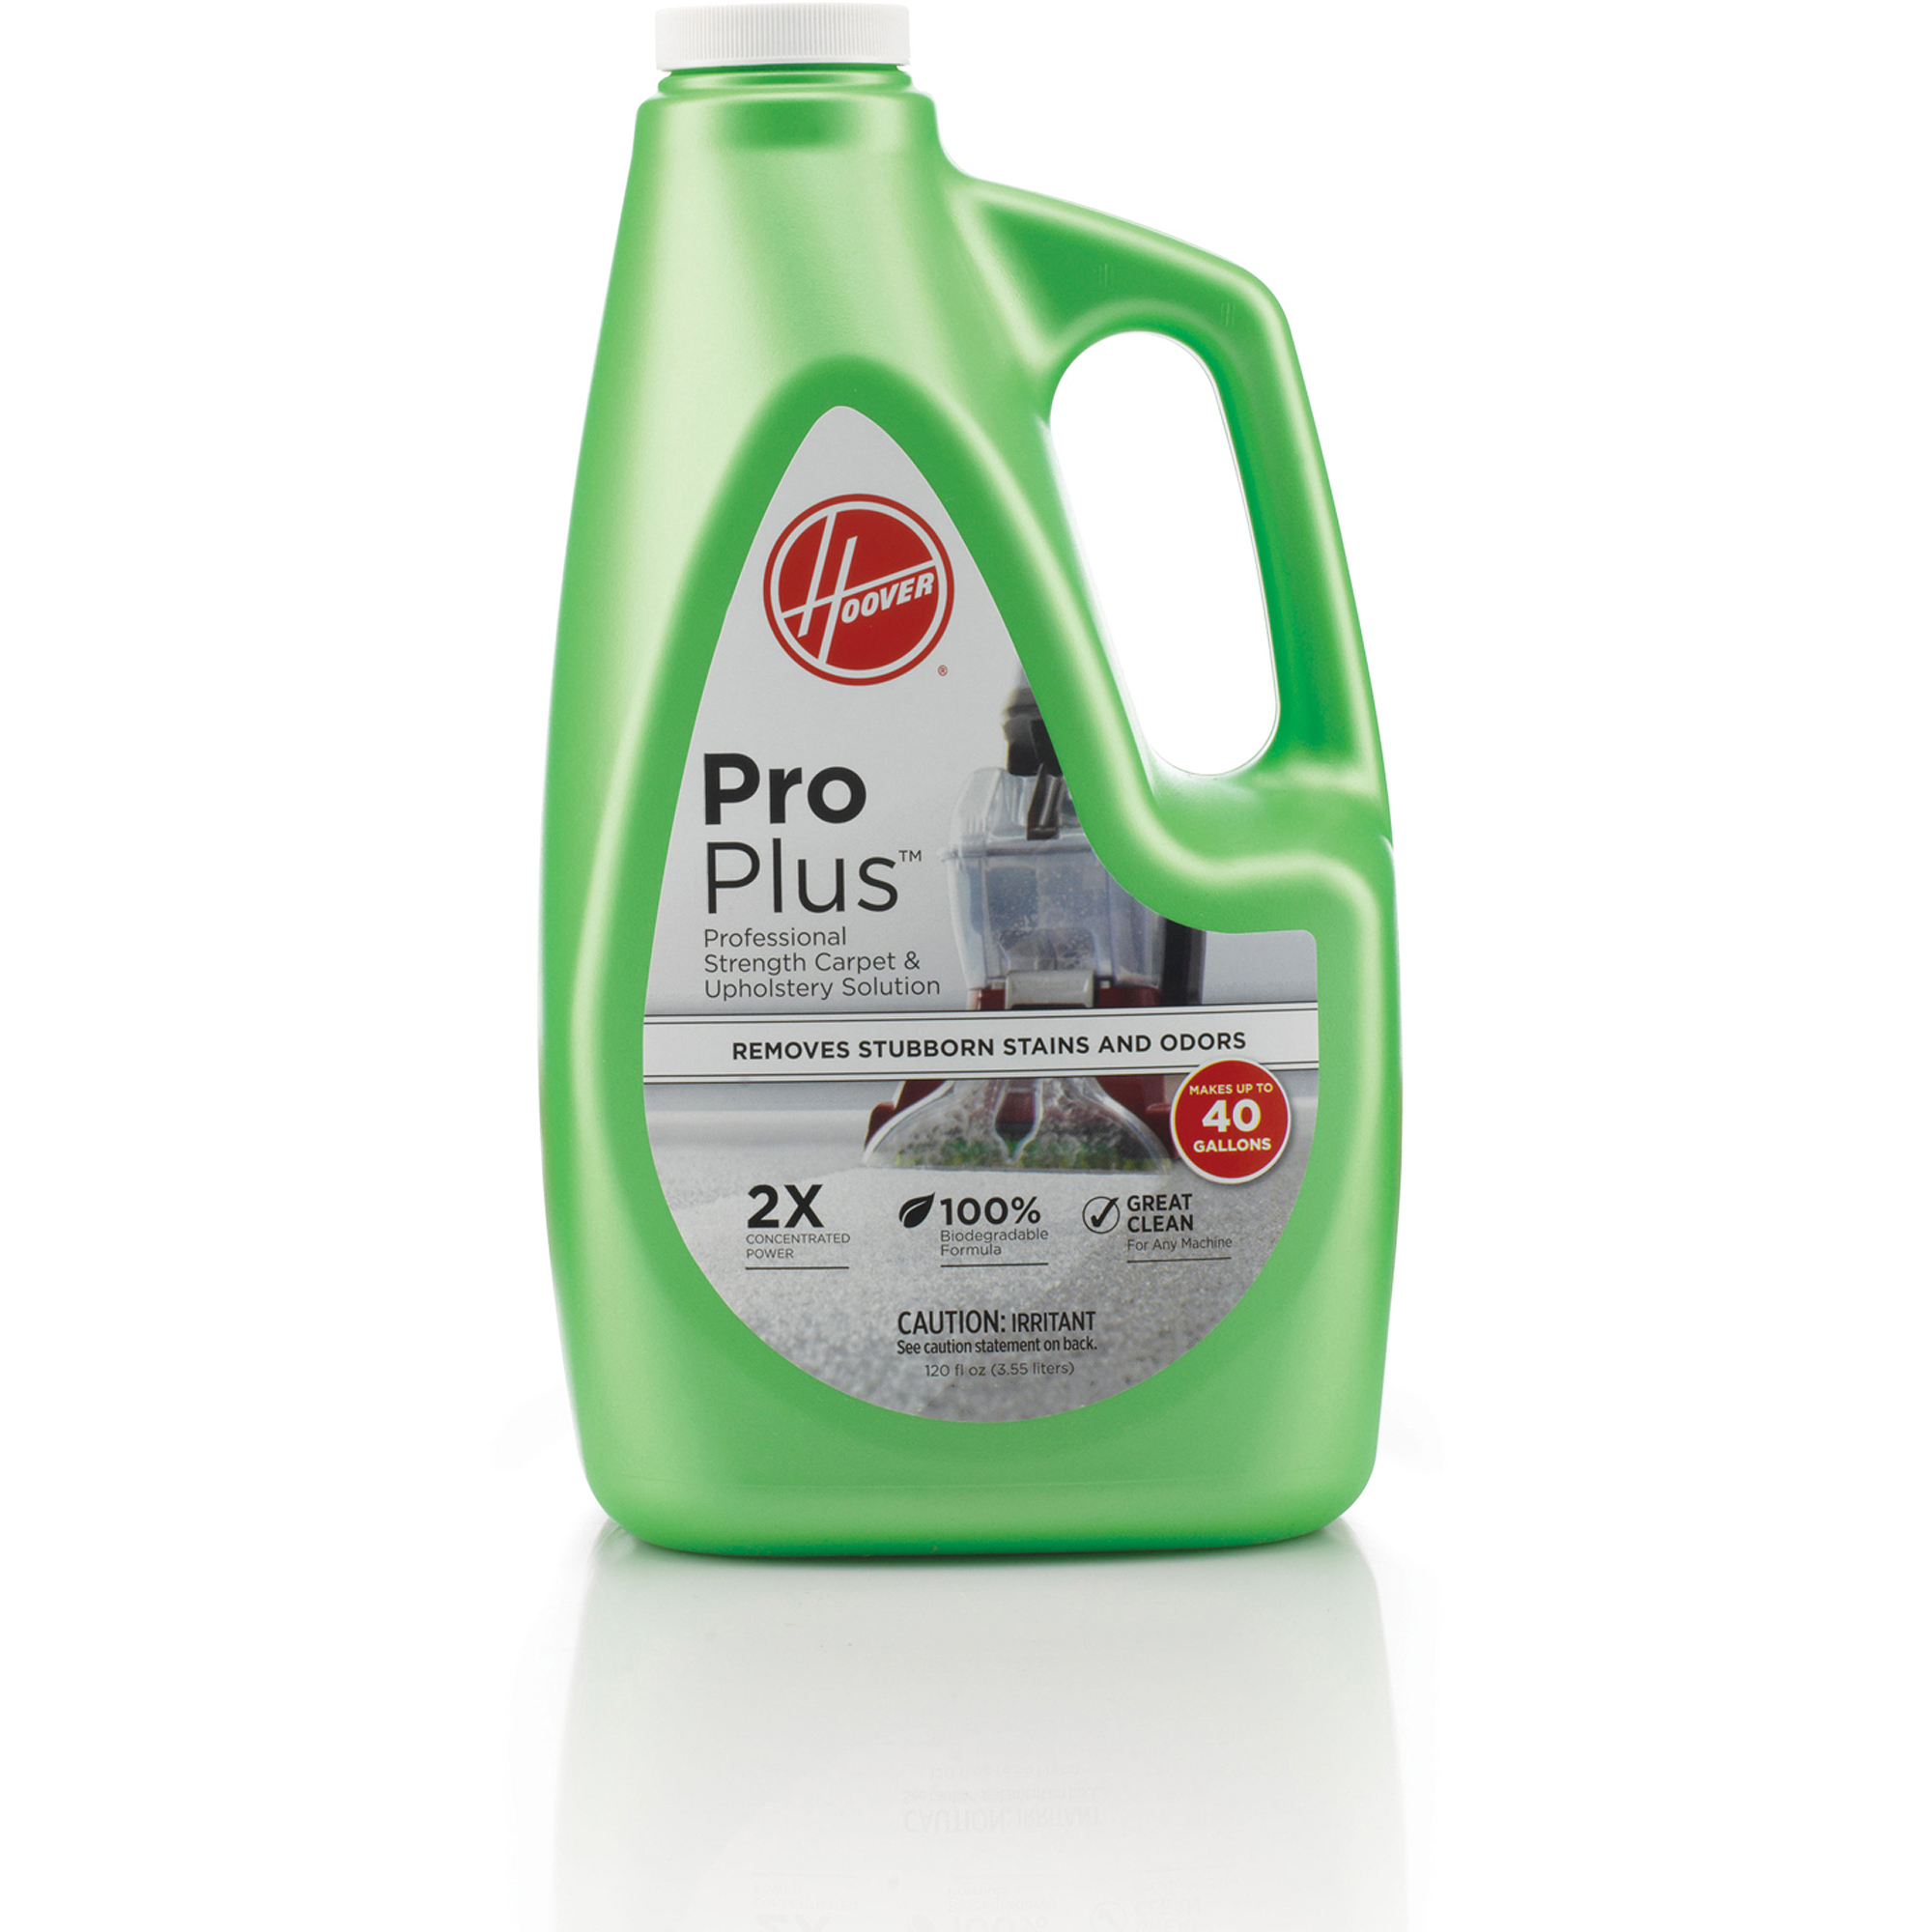 Hoover 2X ProPlus Professional Strength Carpet Cleaner & Upholstery Solution 120 oz, AH30051